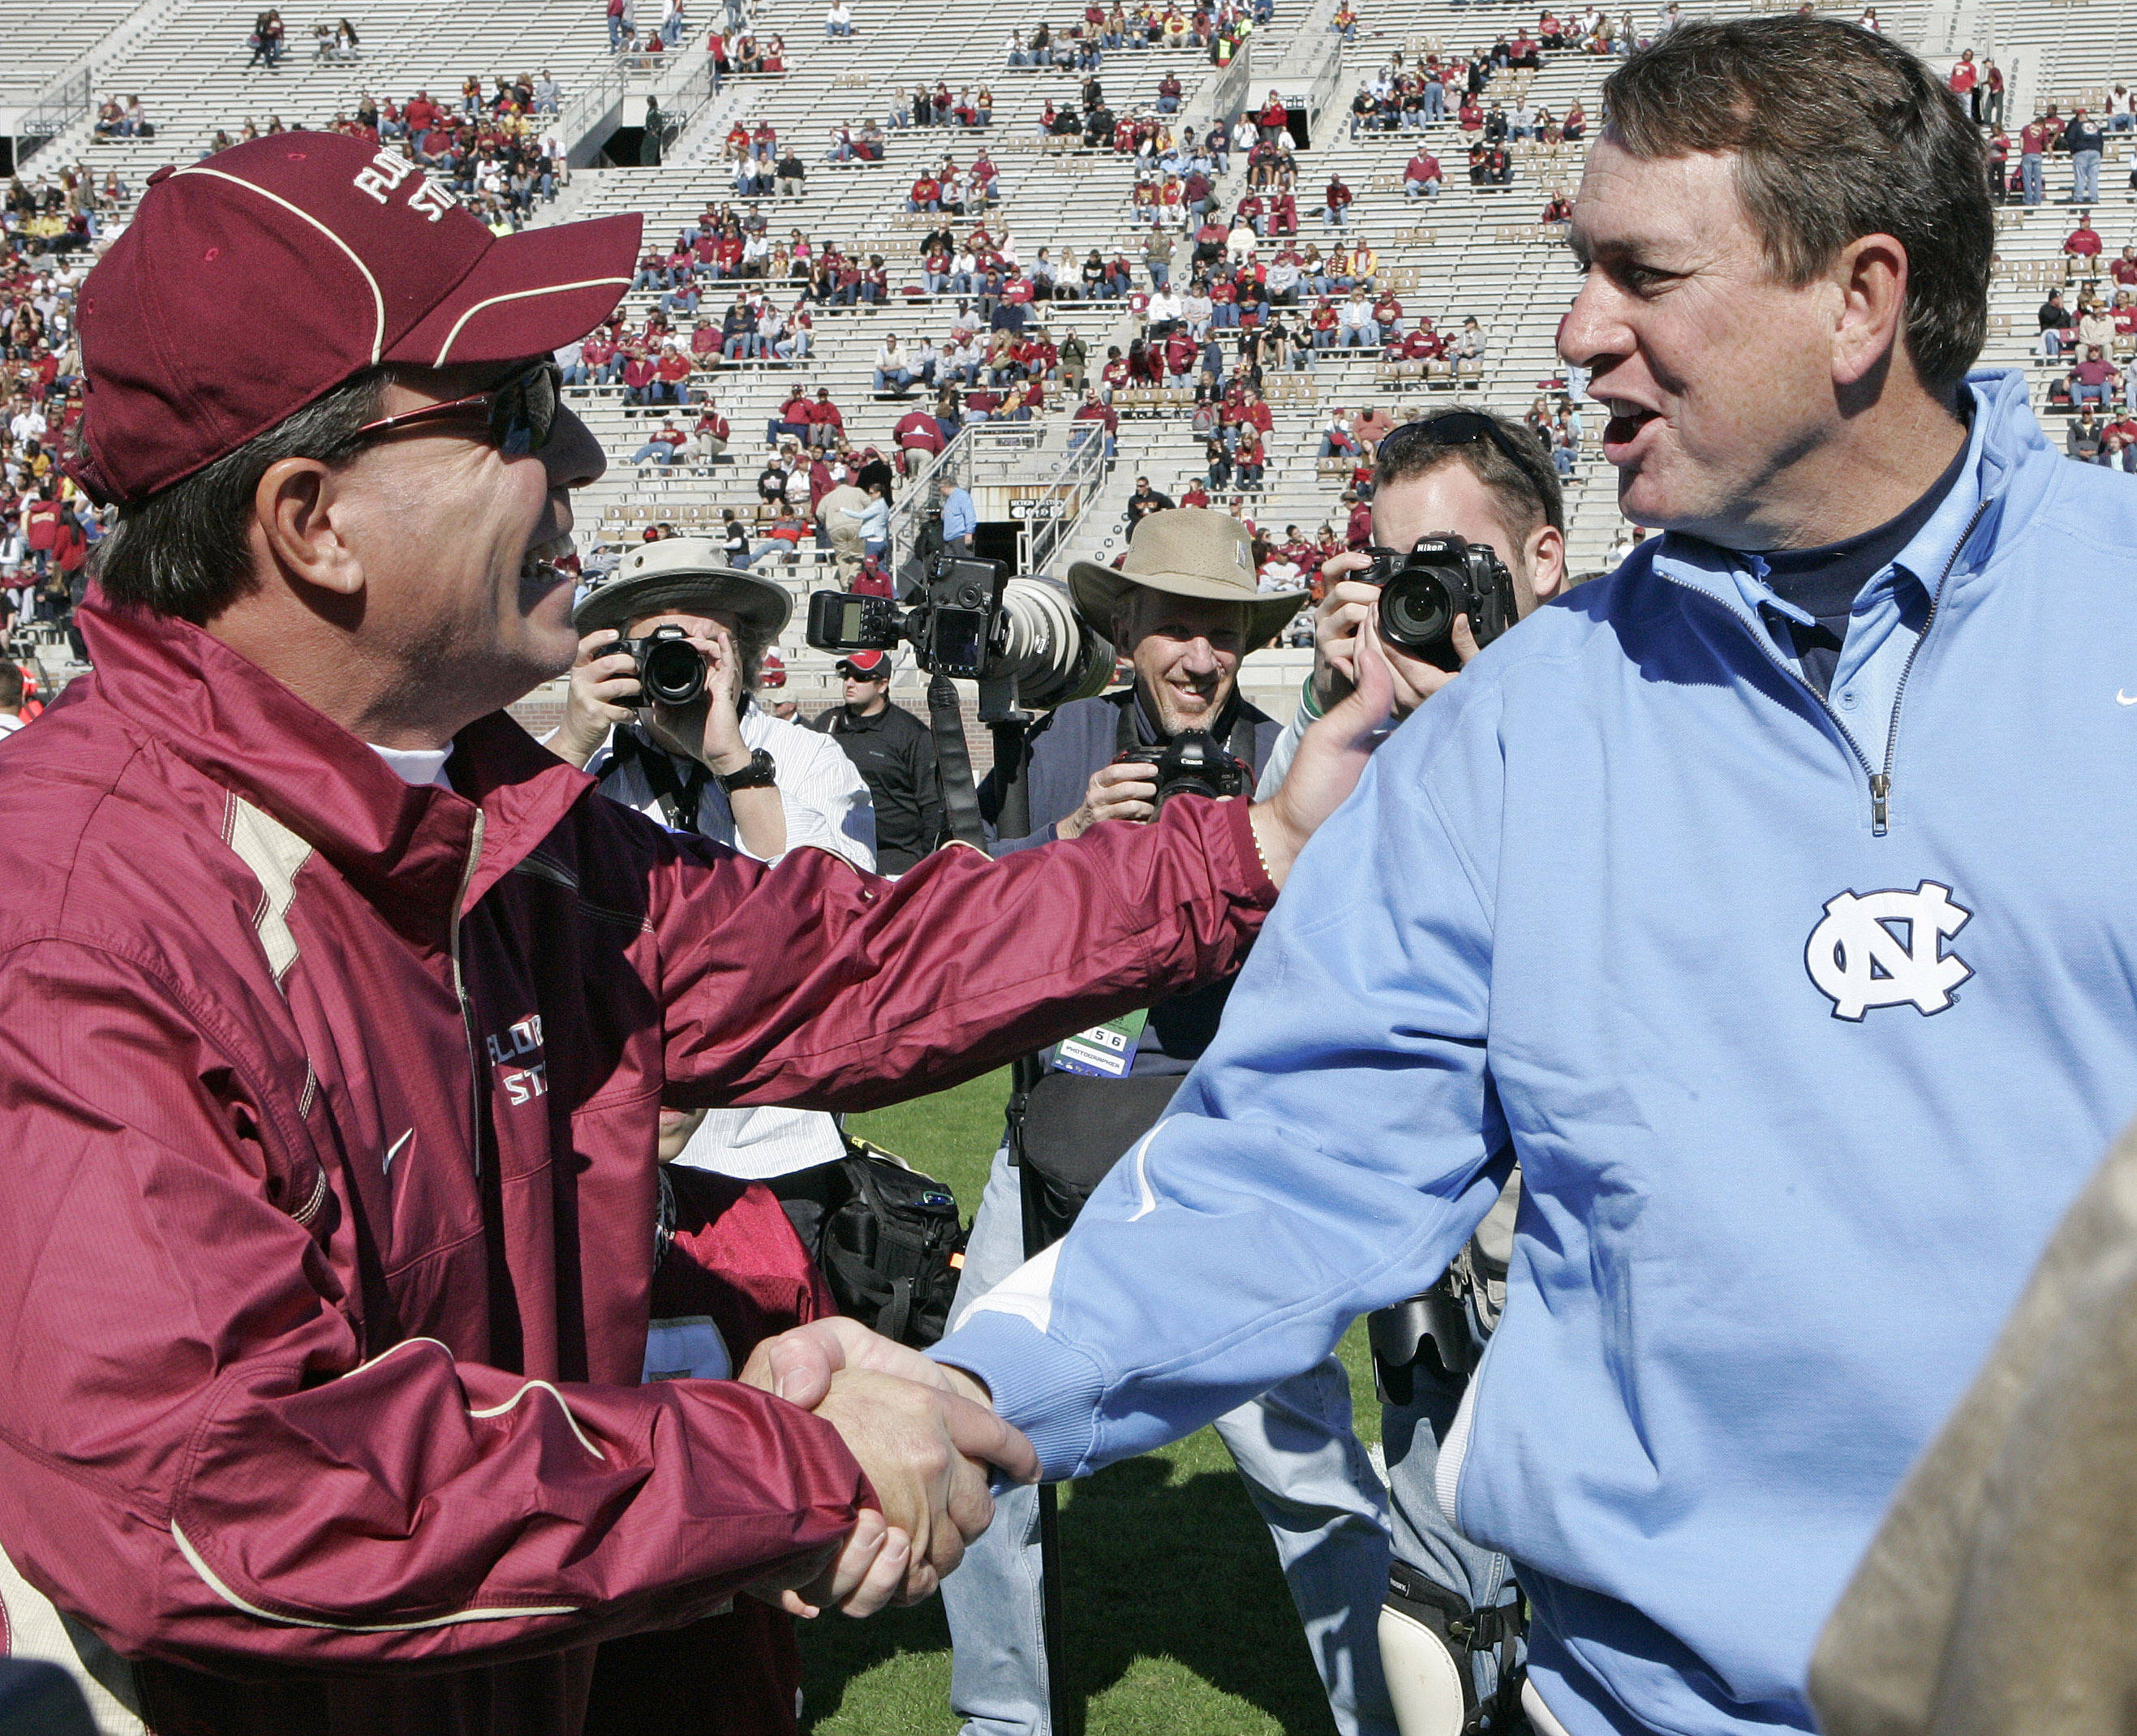 Florida State head coach Jimbo Fisher, left and North Carolina head coach Butch Davis wish each other good luck before the start of their showdown on Saturday. (AP Photo/Steve Cannon)